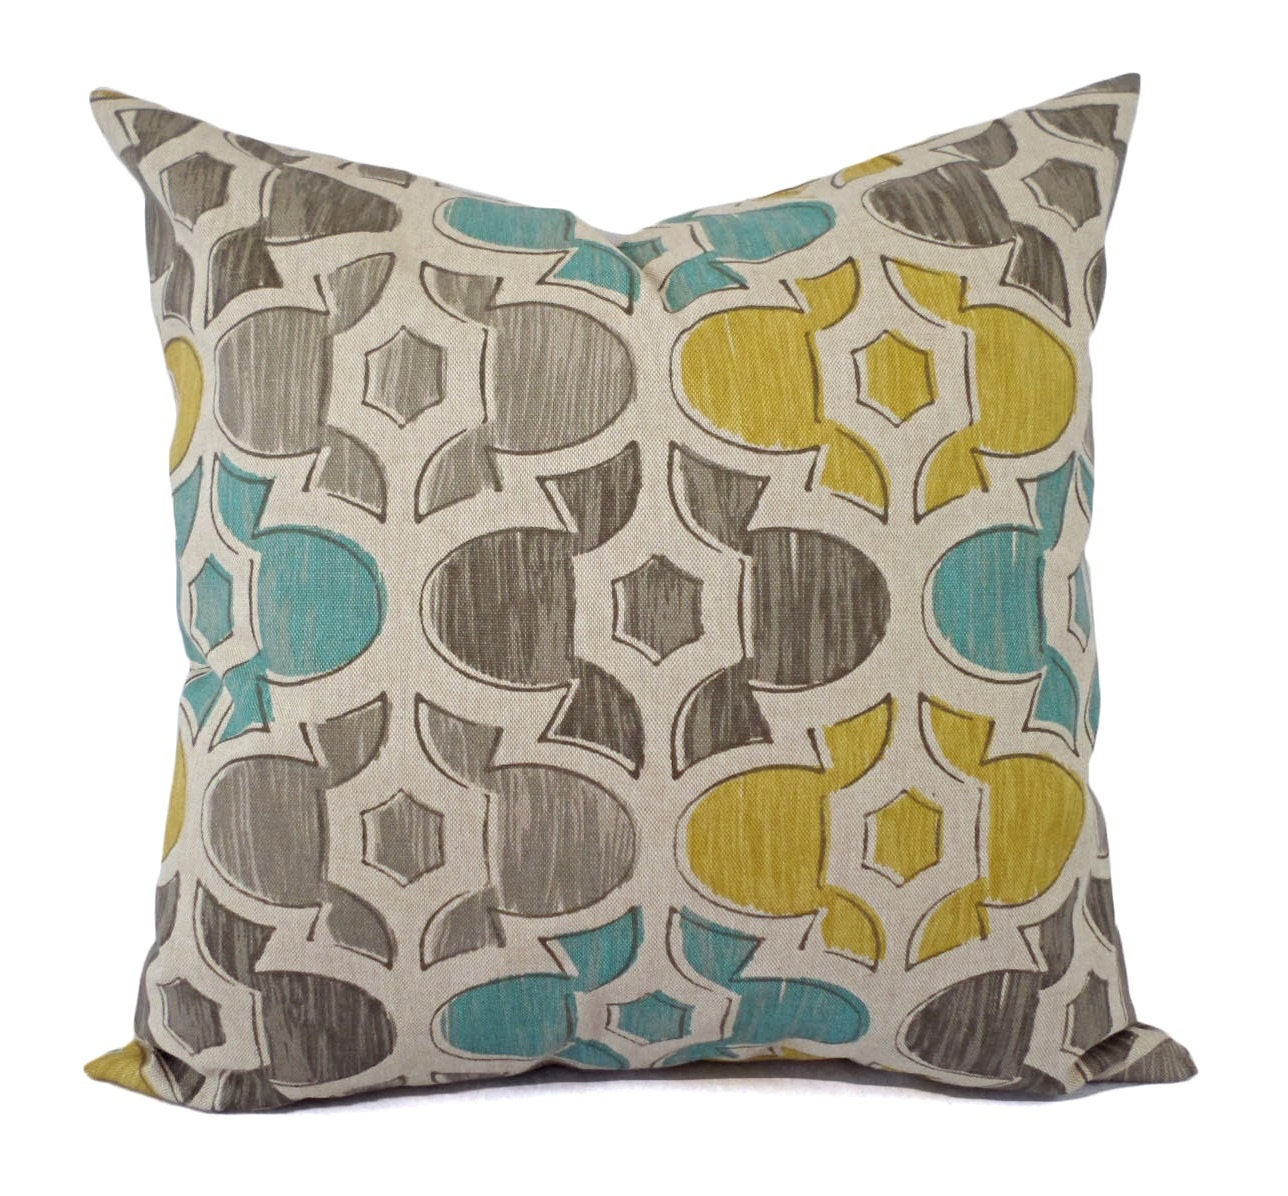 Yellow Blue And Brown Throw Pillows : Brown Yellow and Blue Decorative Pillow Covers Two Geometric